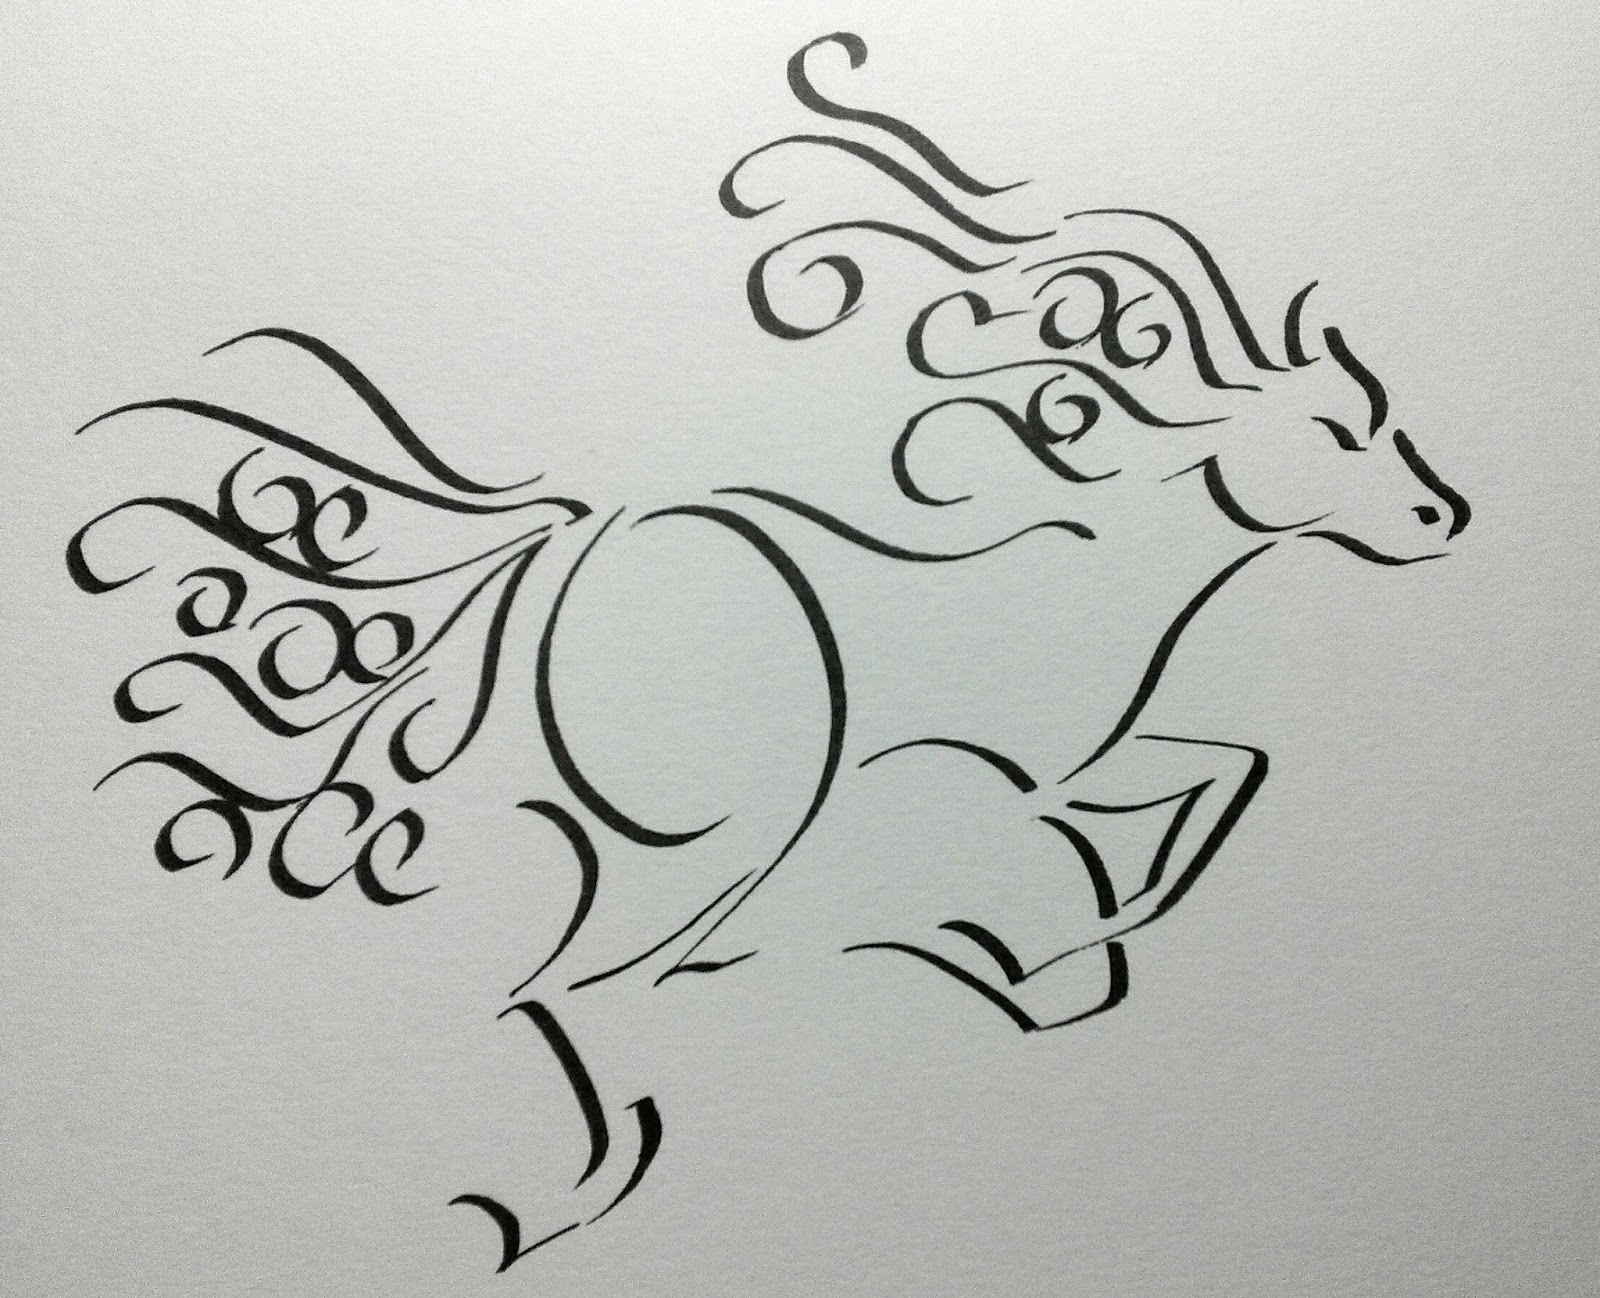 Create a drawing a day calligraphy horse drawing number 29 Easy calligraphy pen